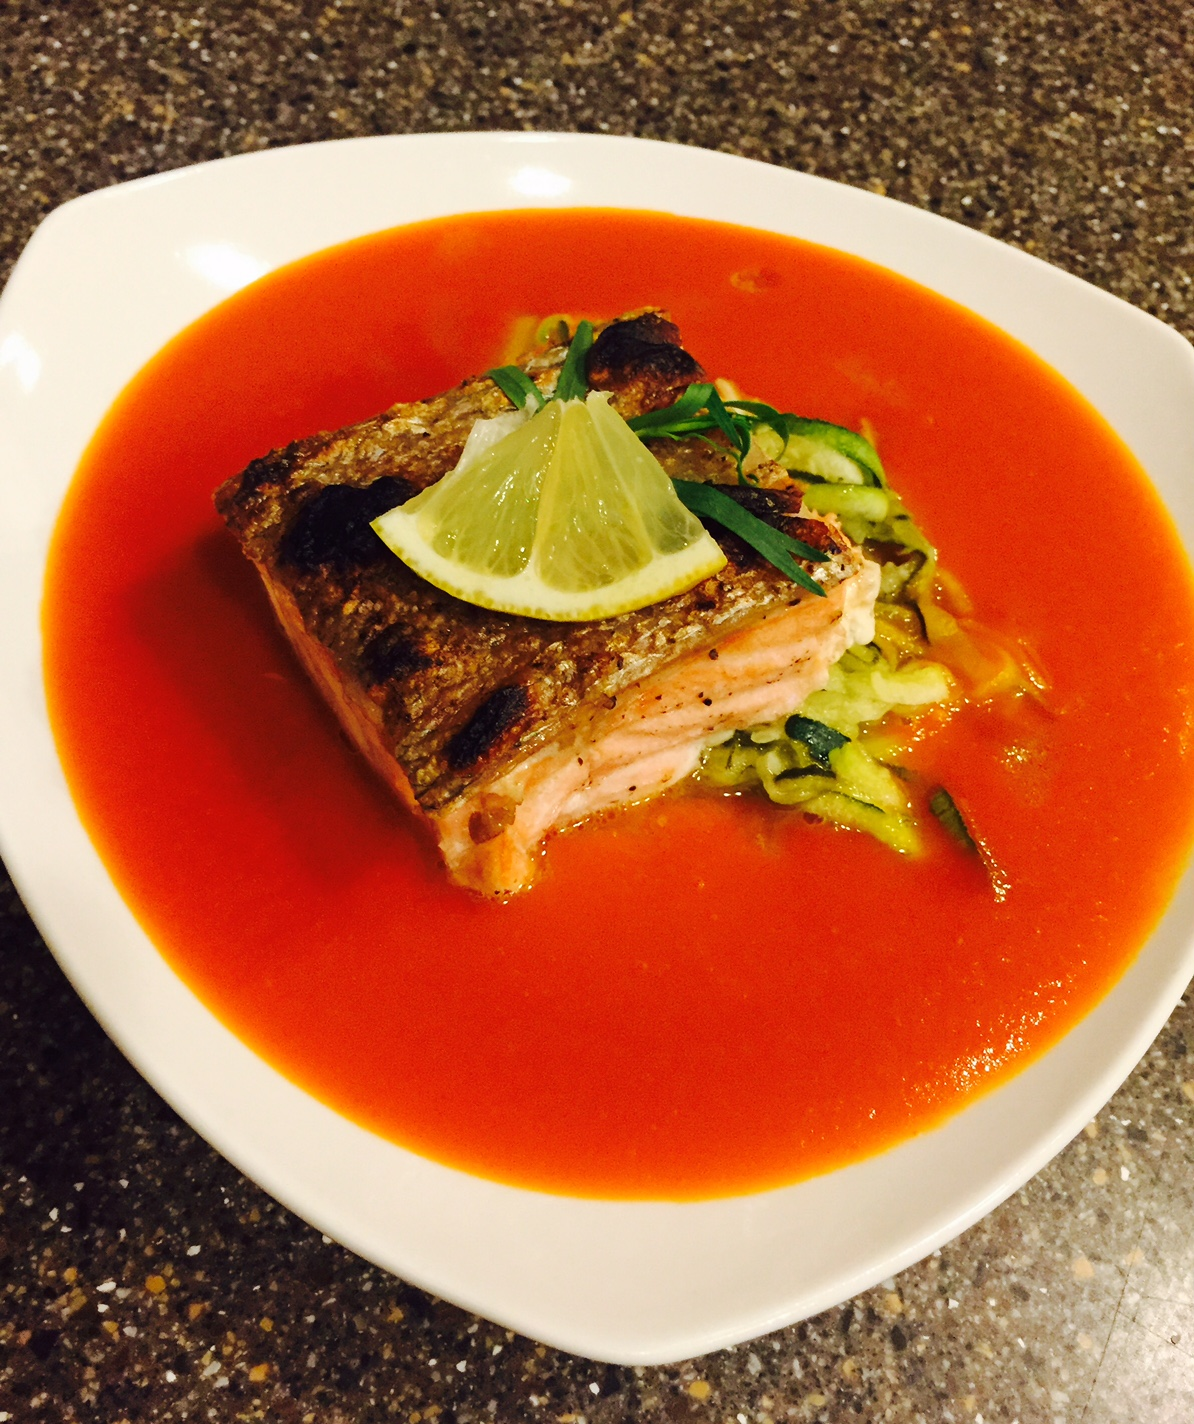 Crispy Skin Wild Caught Salmon over Zucchini Noodles & Lemon, Tarragon Tomato Soup